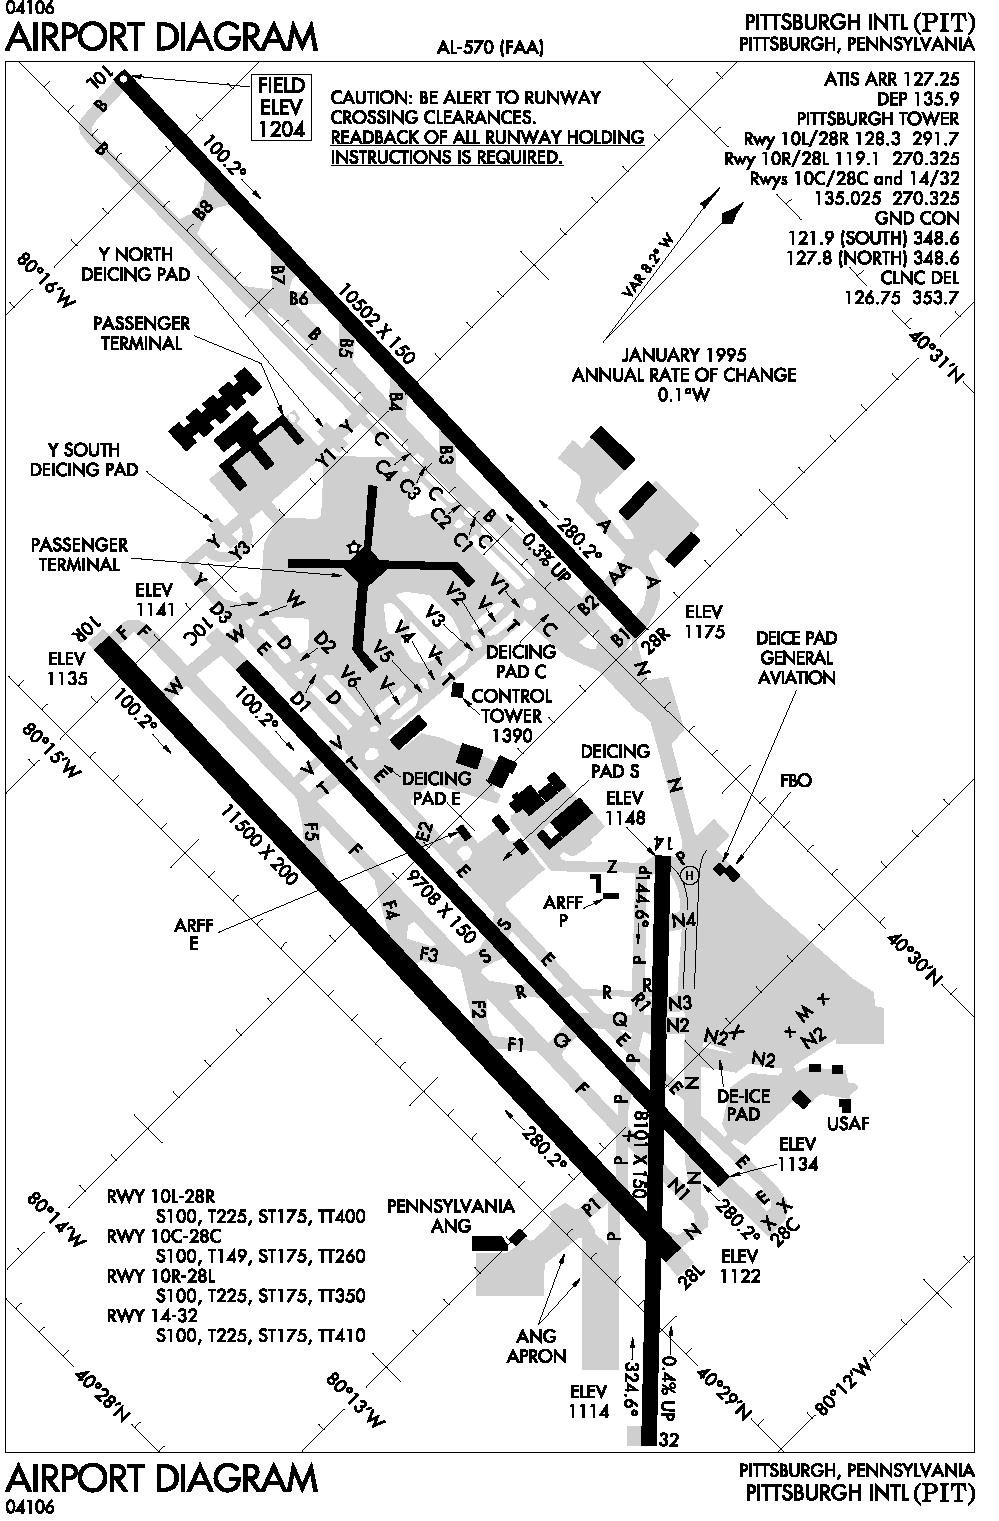 http://www.sciencengines.com/jrc/Images/PittsburghInternationalAirportDiagram.jpg